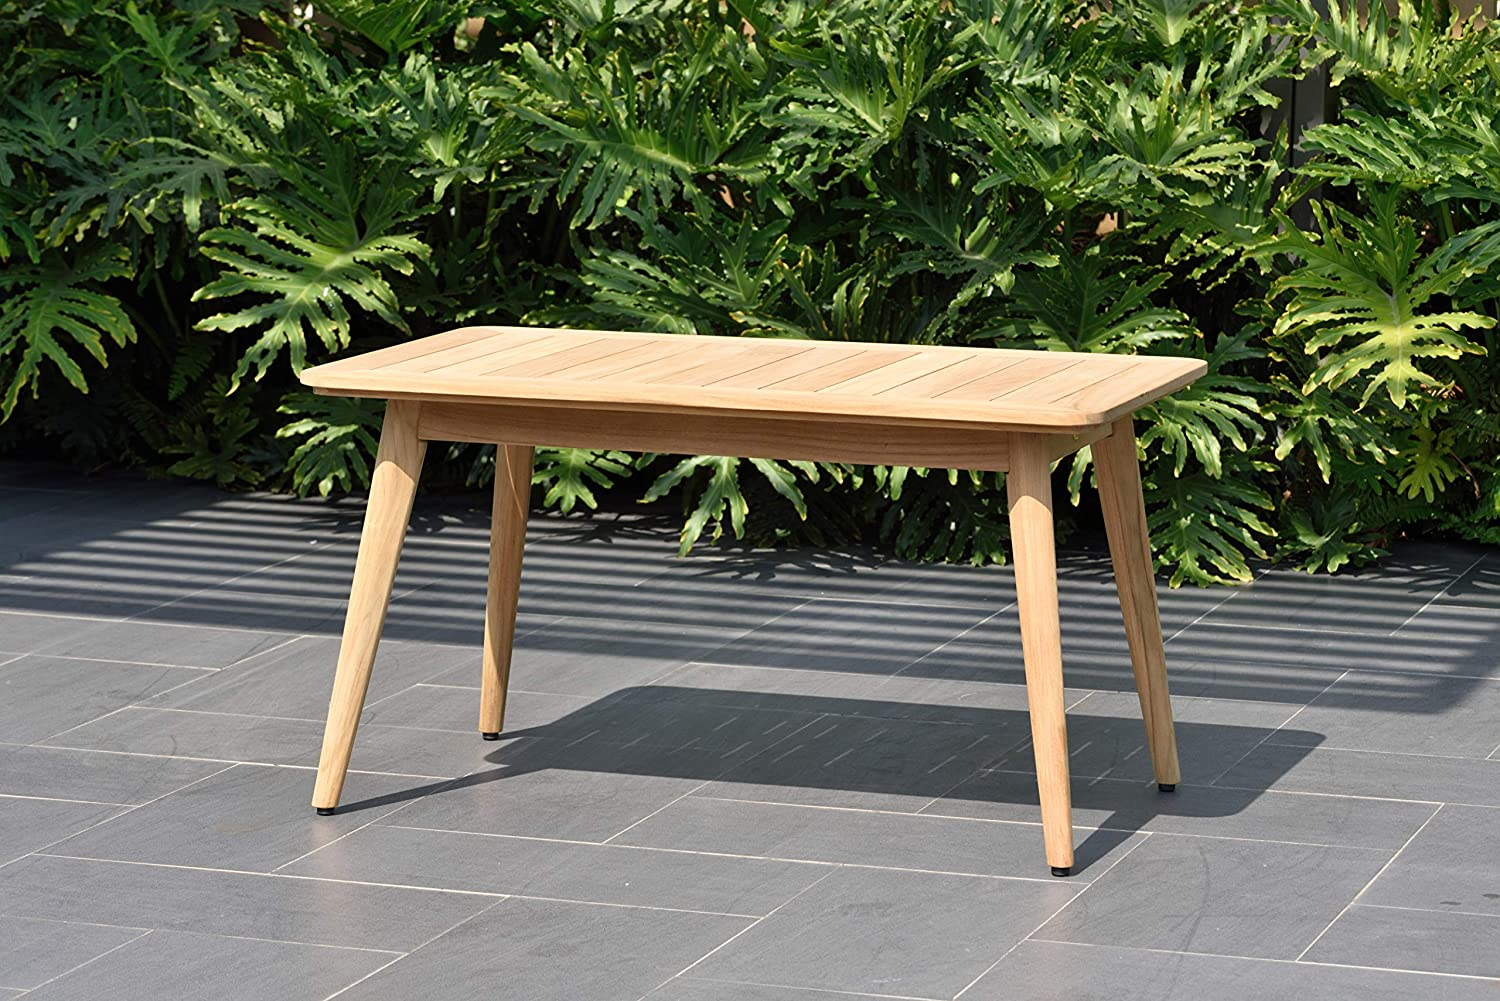 Amazonia Baytown Patio Durable Outdoor and Indoor Furniture Made of Teak | Modern Coffe/Side Table, Light Brown